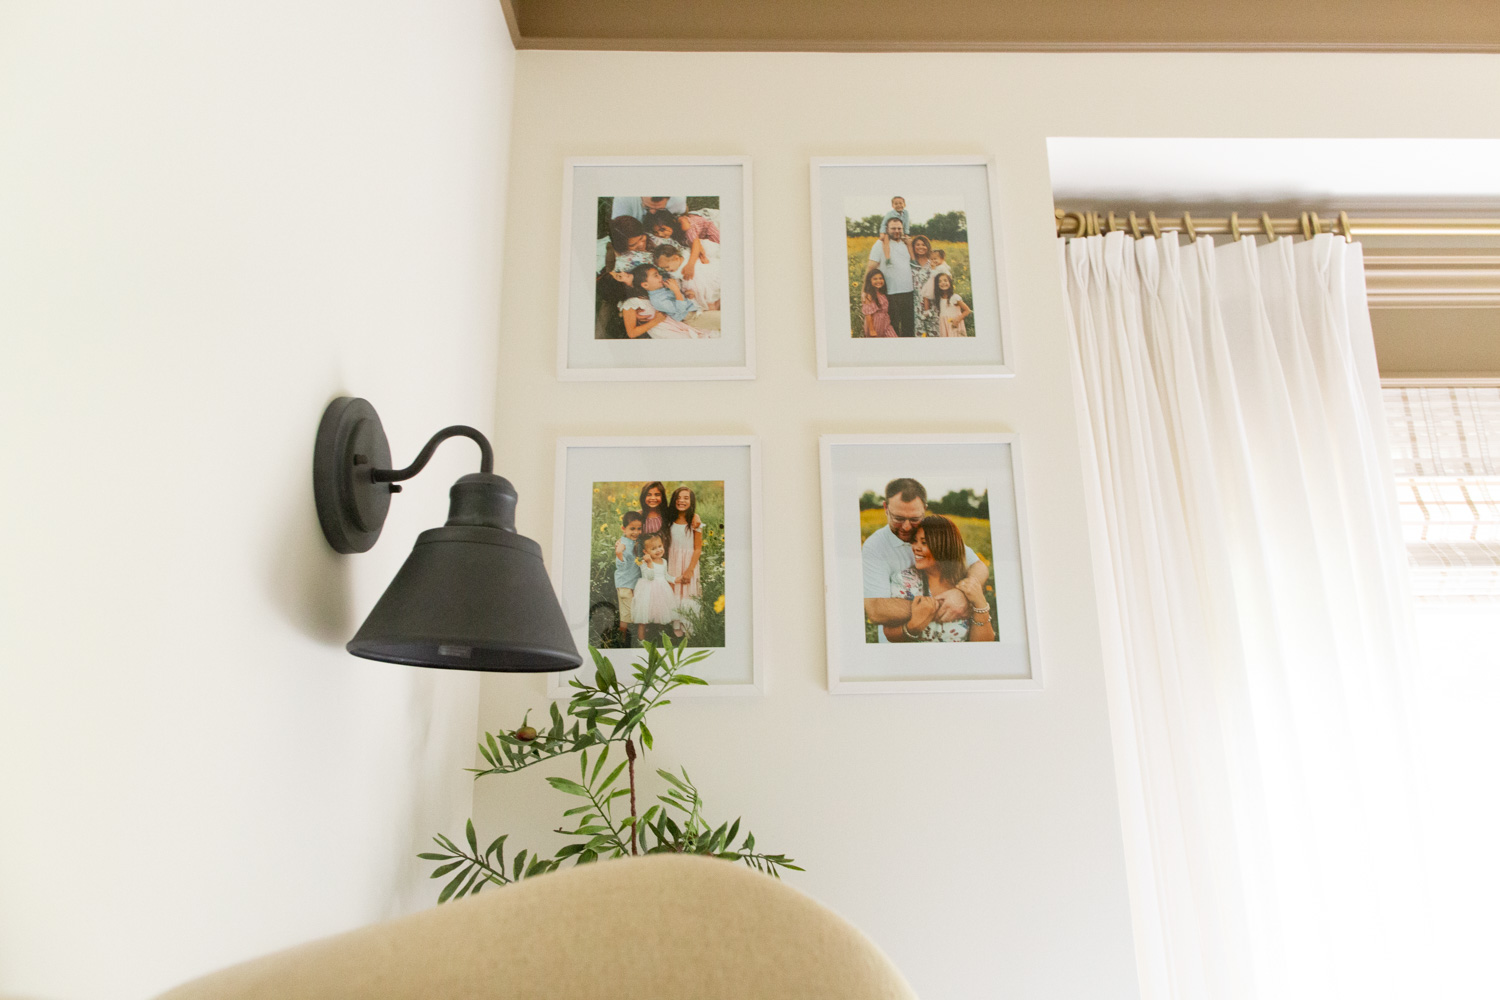 DIY Wall Sconce Lighting without Electricity or Power ... on Sconces No Electric Power id=26149